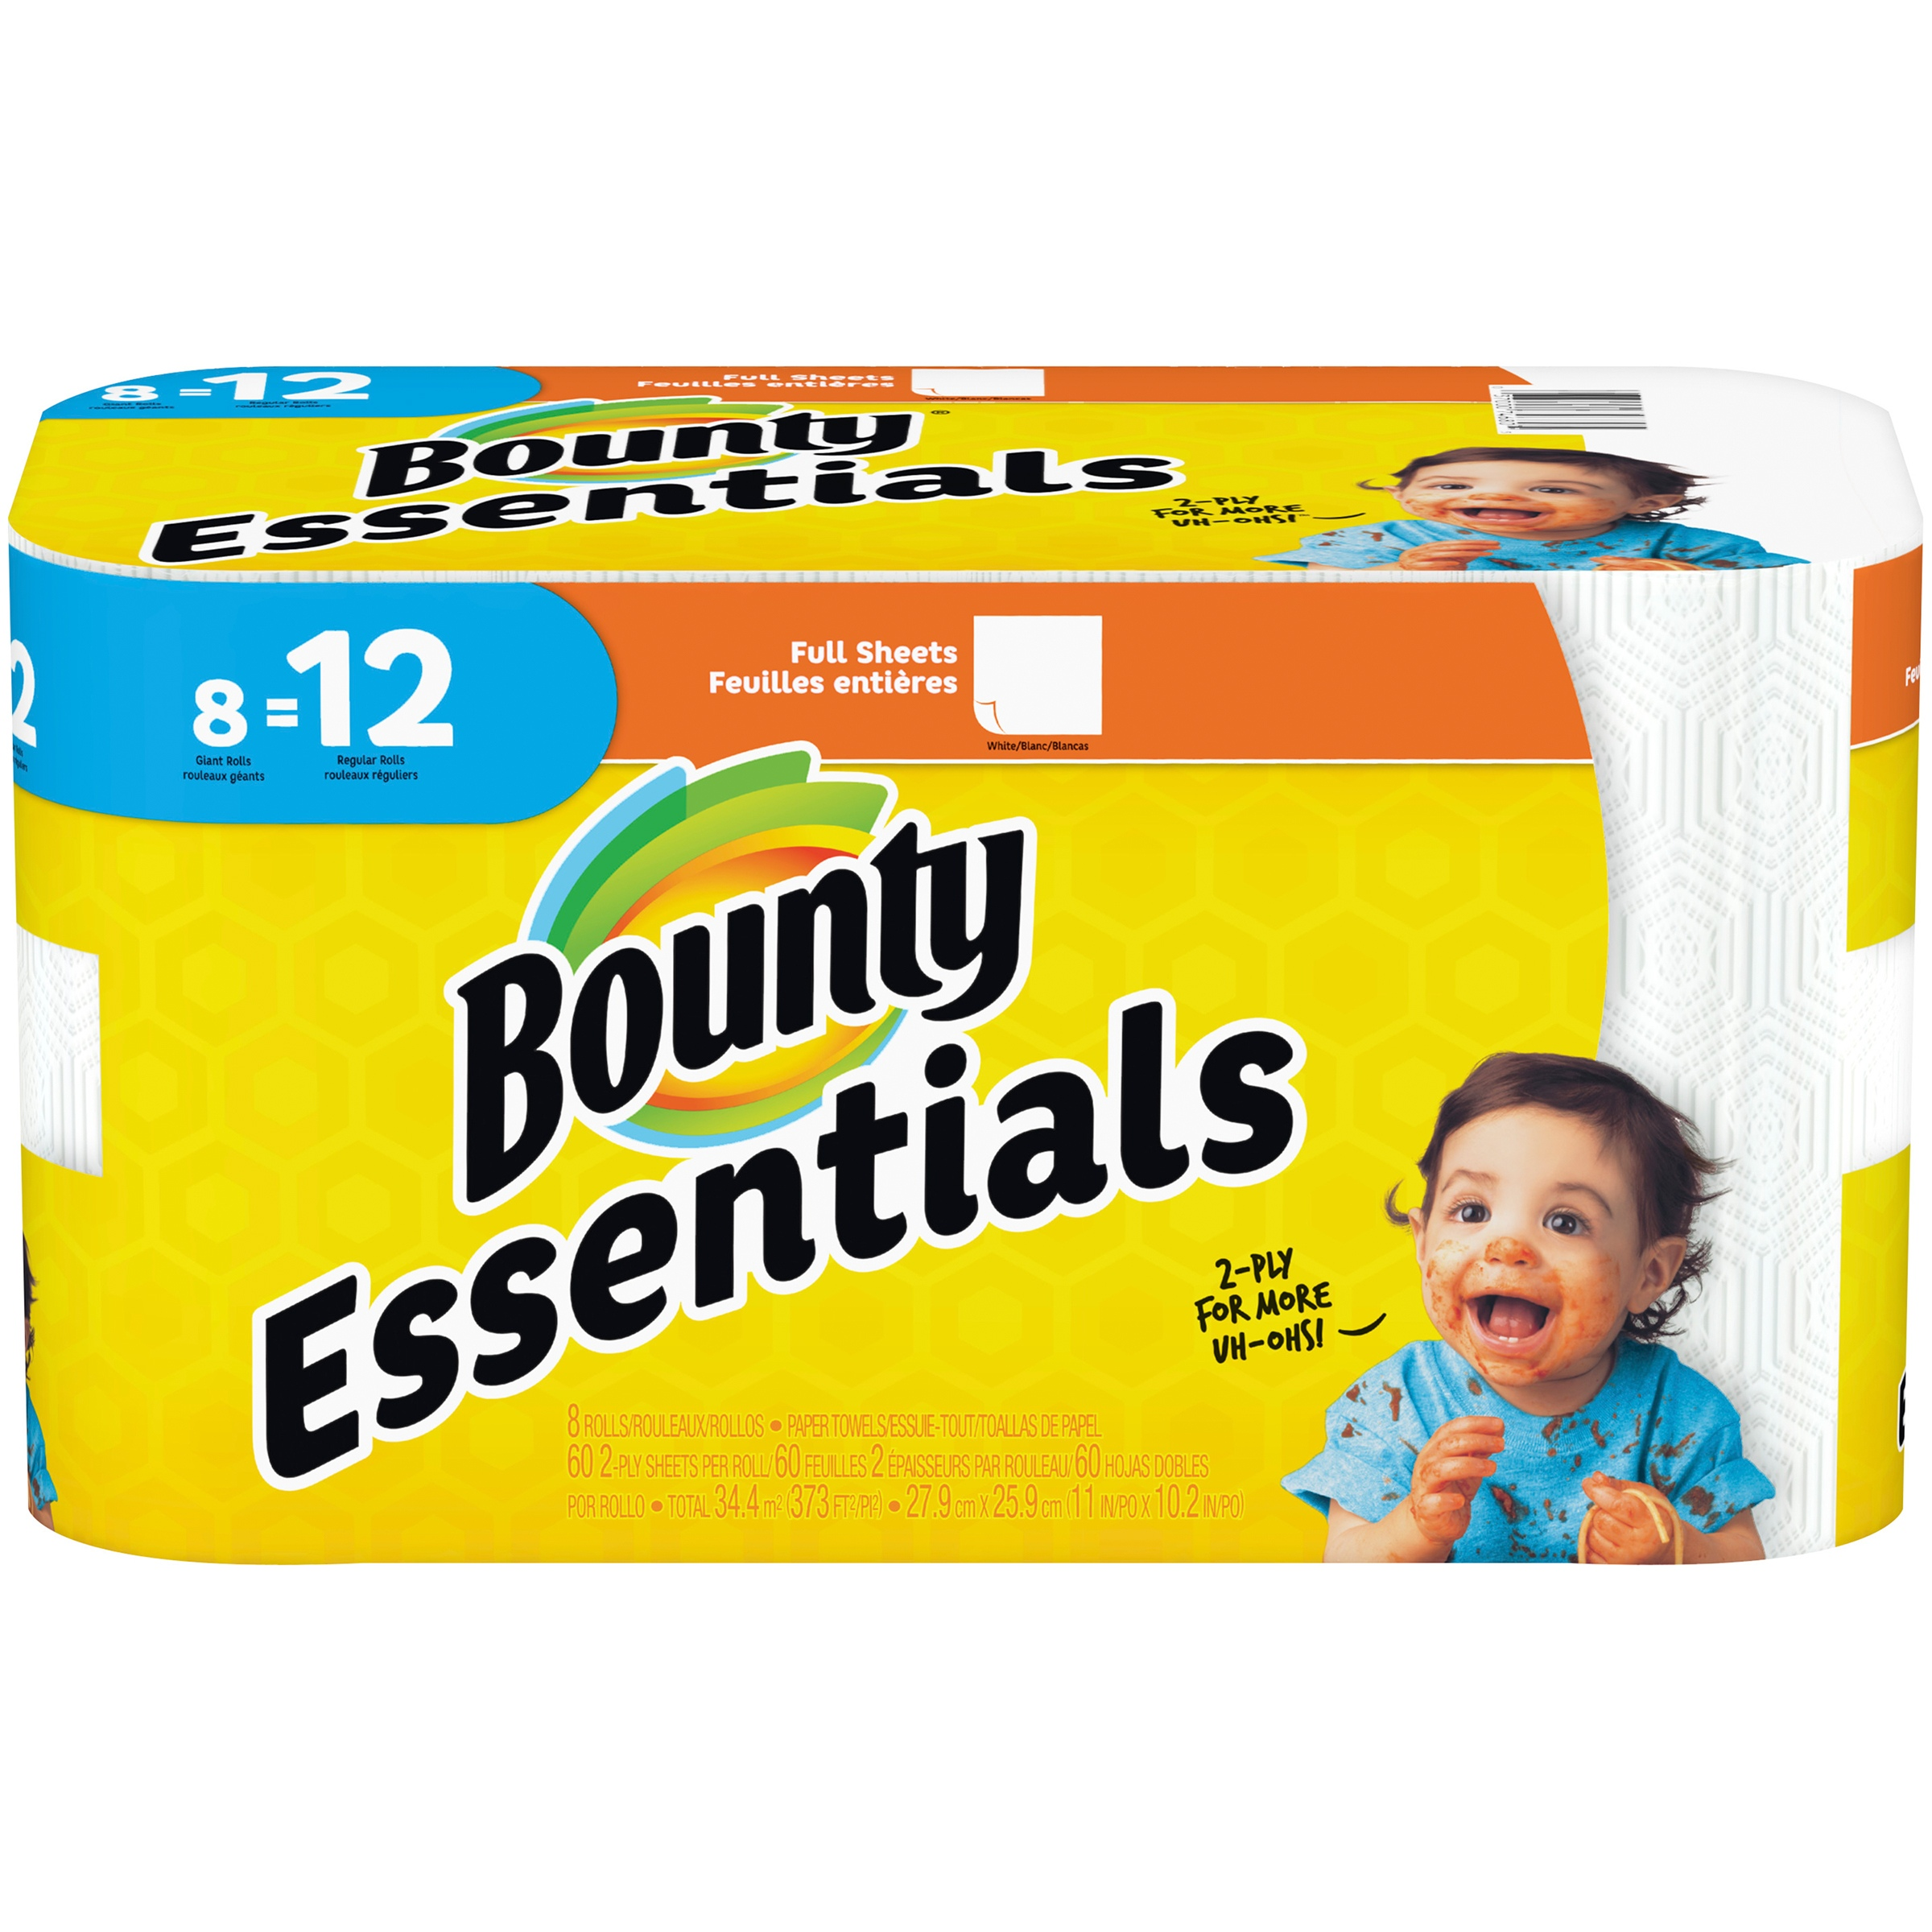 Bounty Essentials Paper Towels, Full Sheet, 8 Giant Rolls